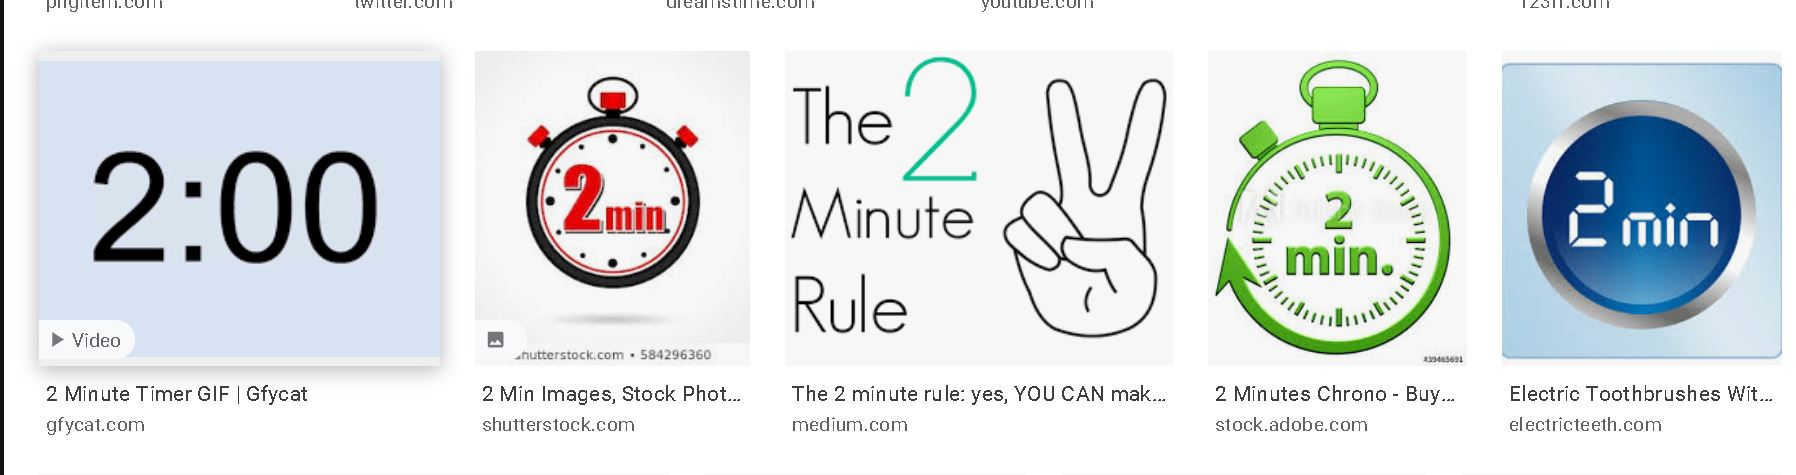 tips produktif: 2 minutes rule